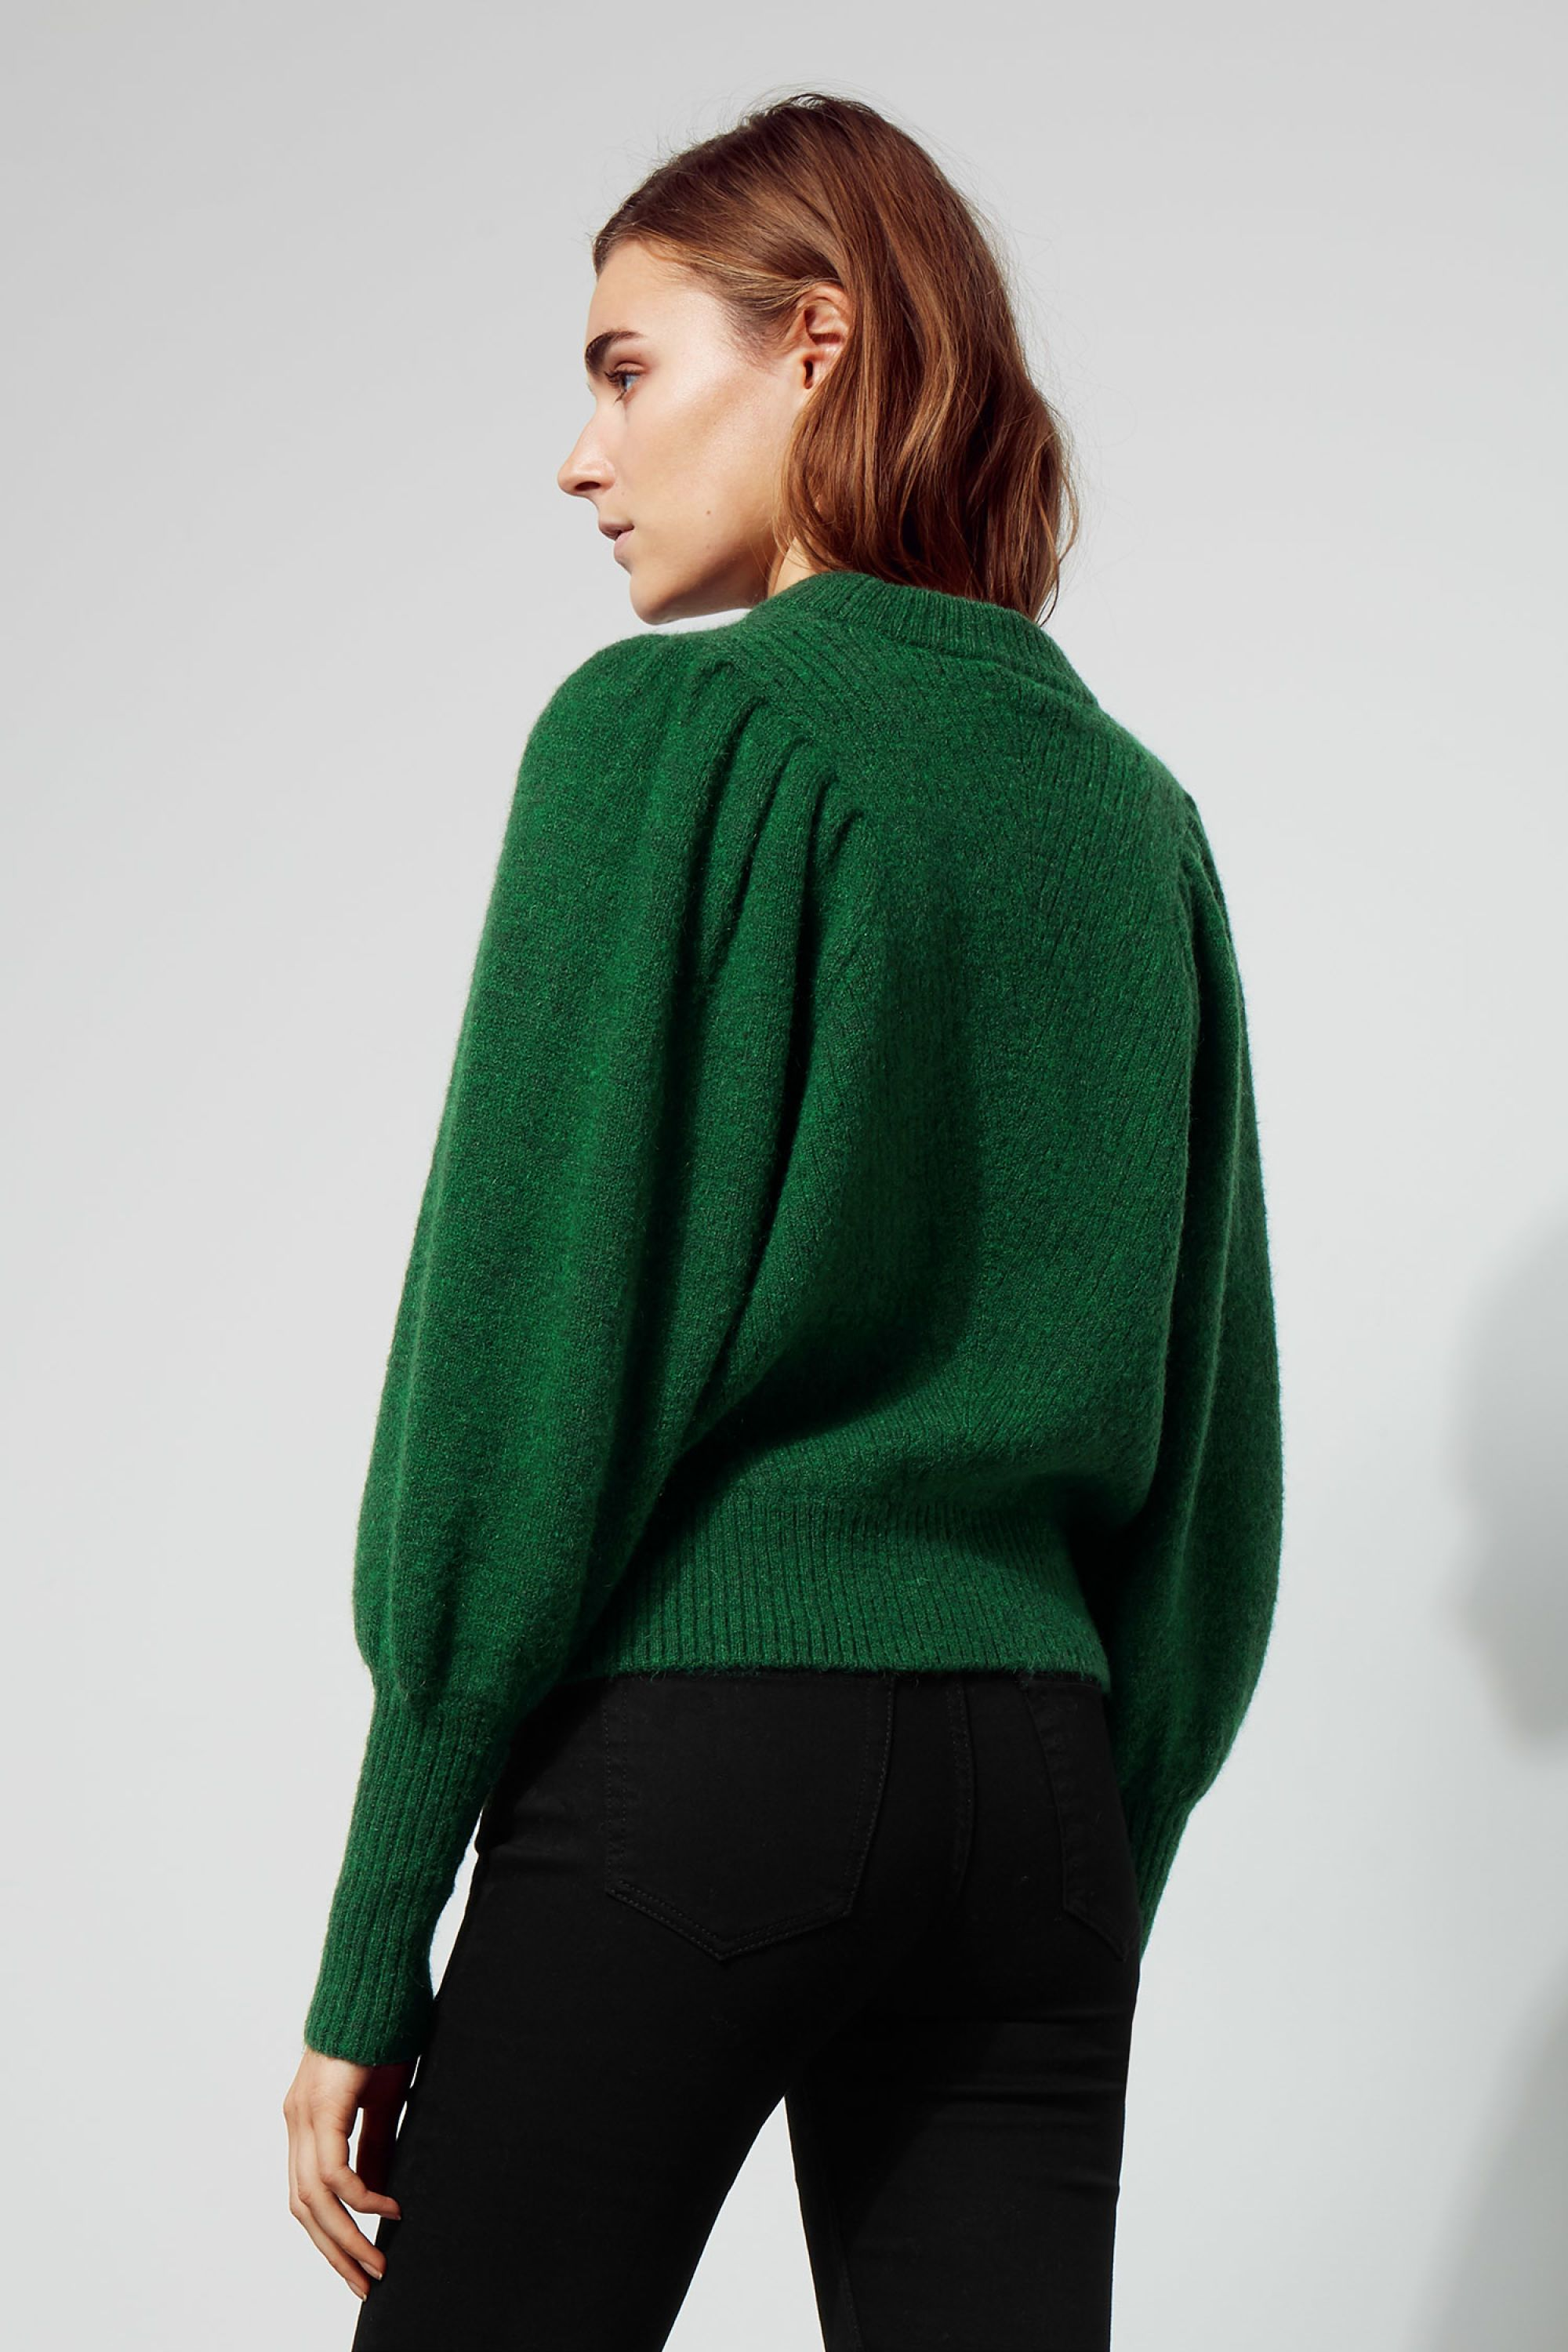 b40f51a108  p The Duet Sweater combines fine feminine details in a subtle design.  Knitted in a wool blend with just a bit of mohair for and extra soft touch